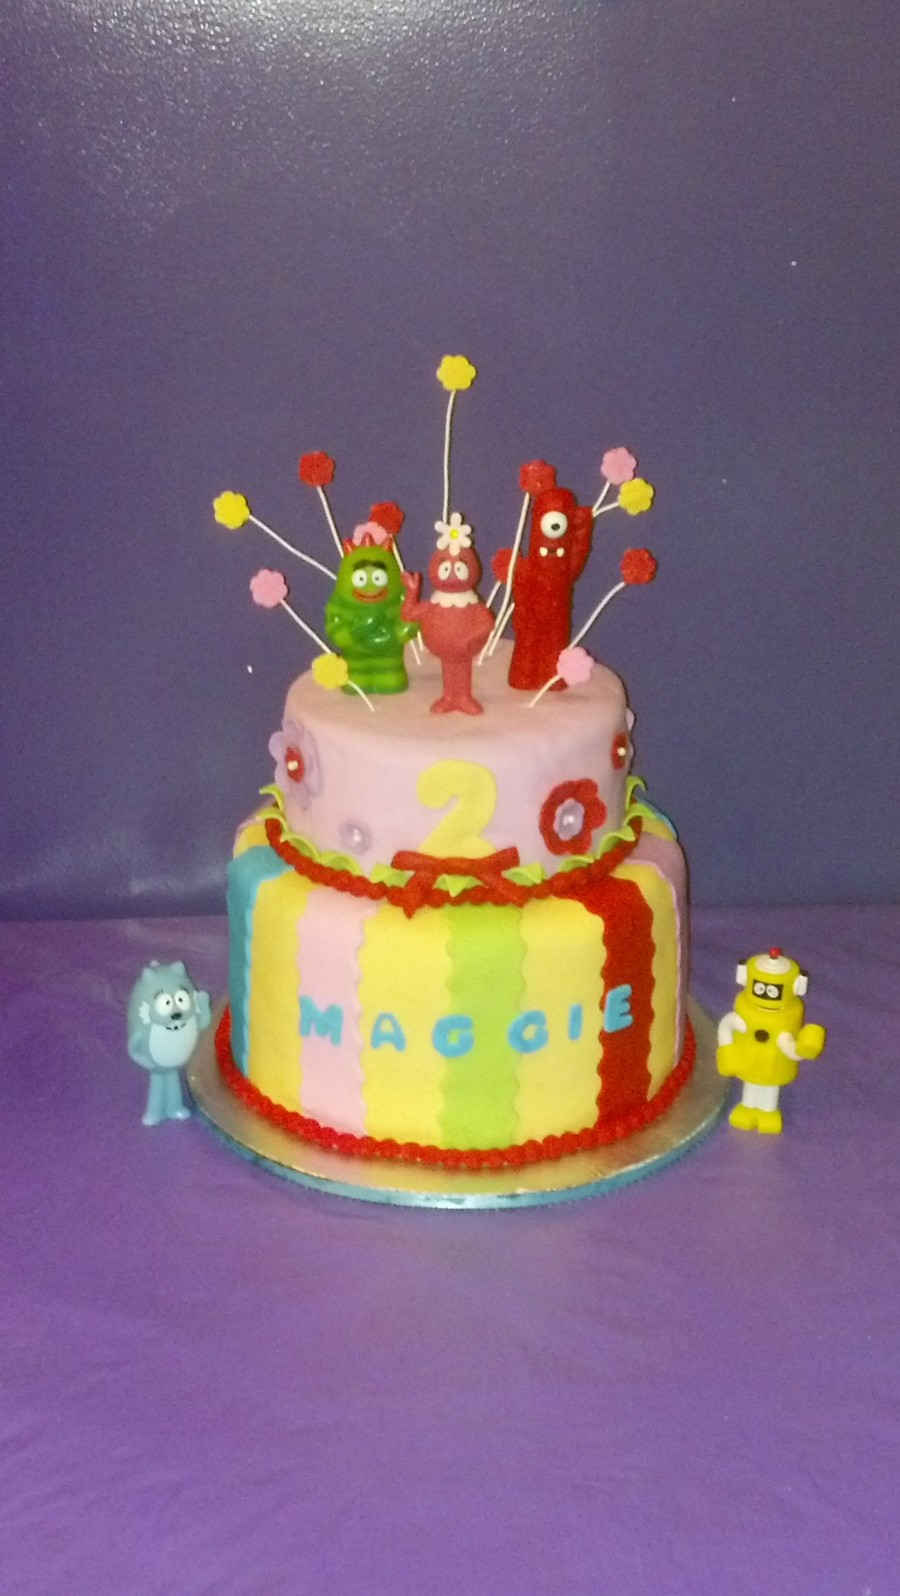 Friends Little Girls 2nd Birthday Cake I Think The Idea Came From